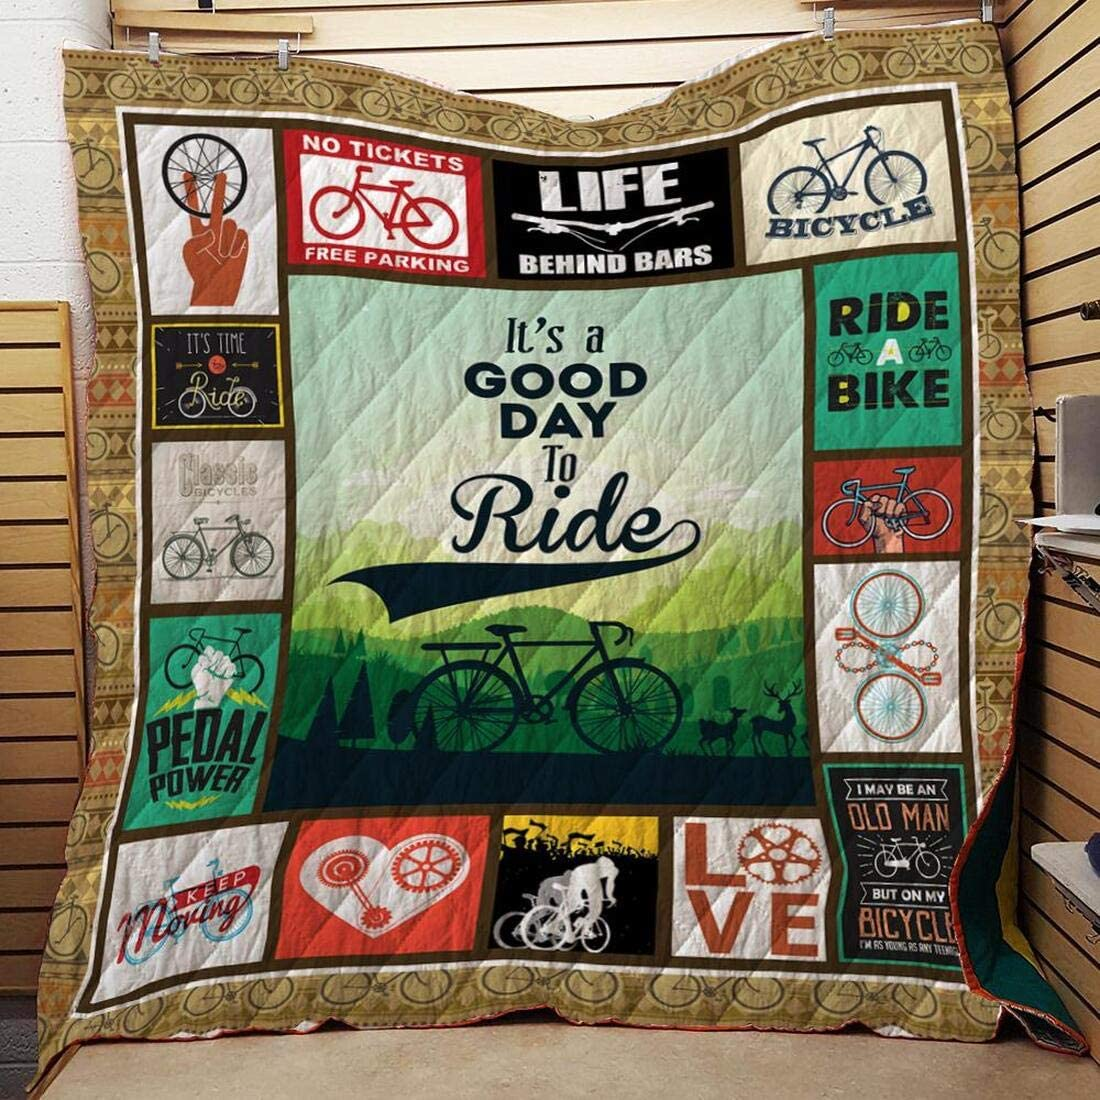 Personalized Max 40% Elegant OFF Cycling Life Behind Bars Quilt Your Gift for Lover